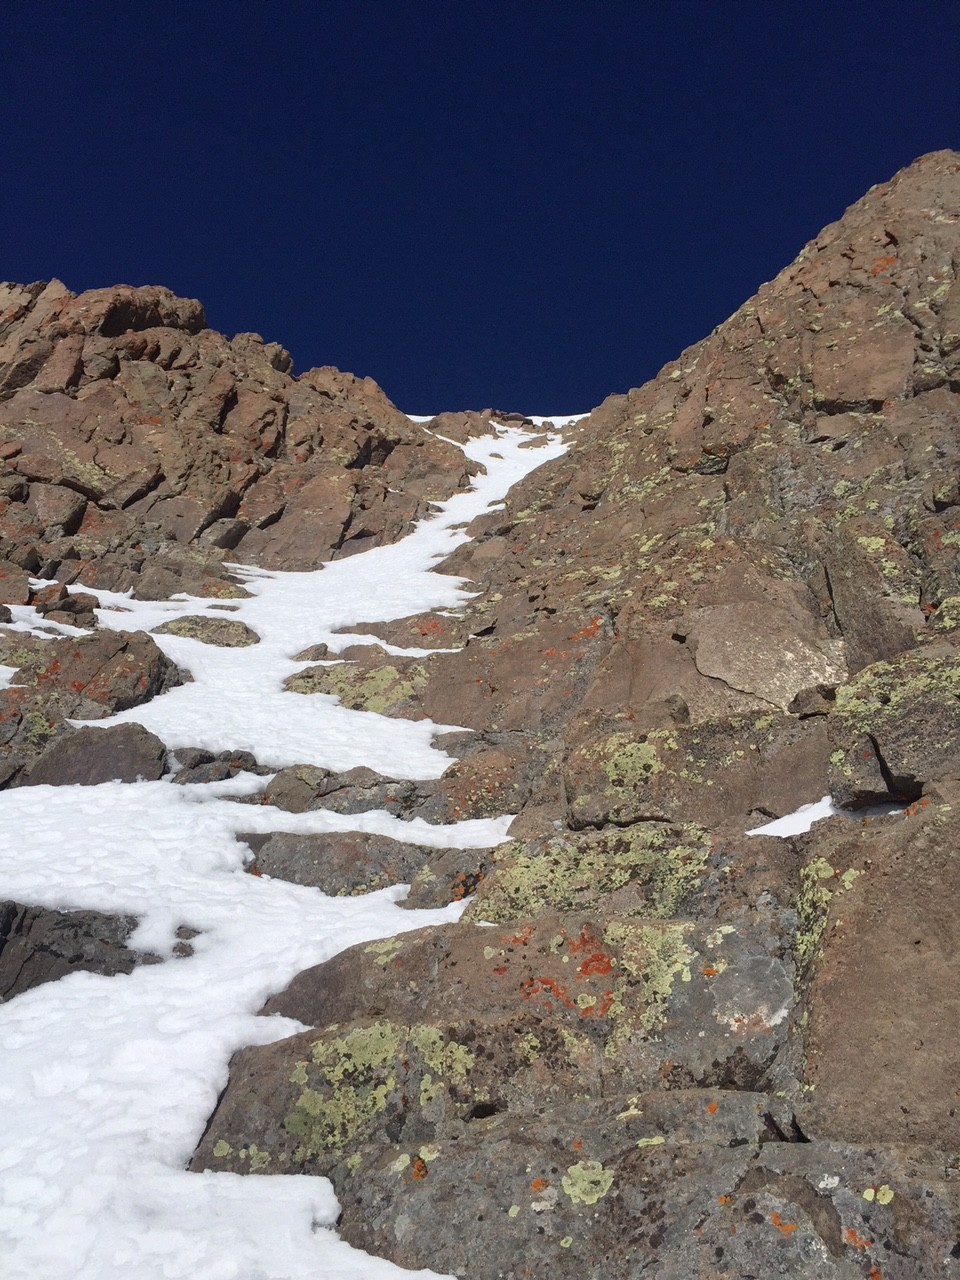 Fun summit pitch that to my knowledge has never been skied due to its lack of snow and steepness and narrow nature.